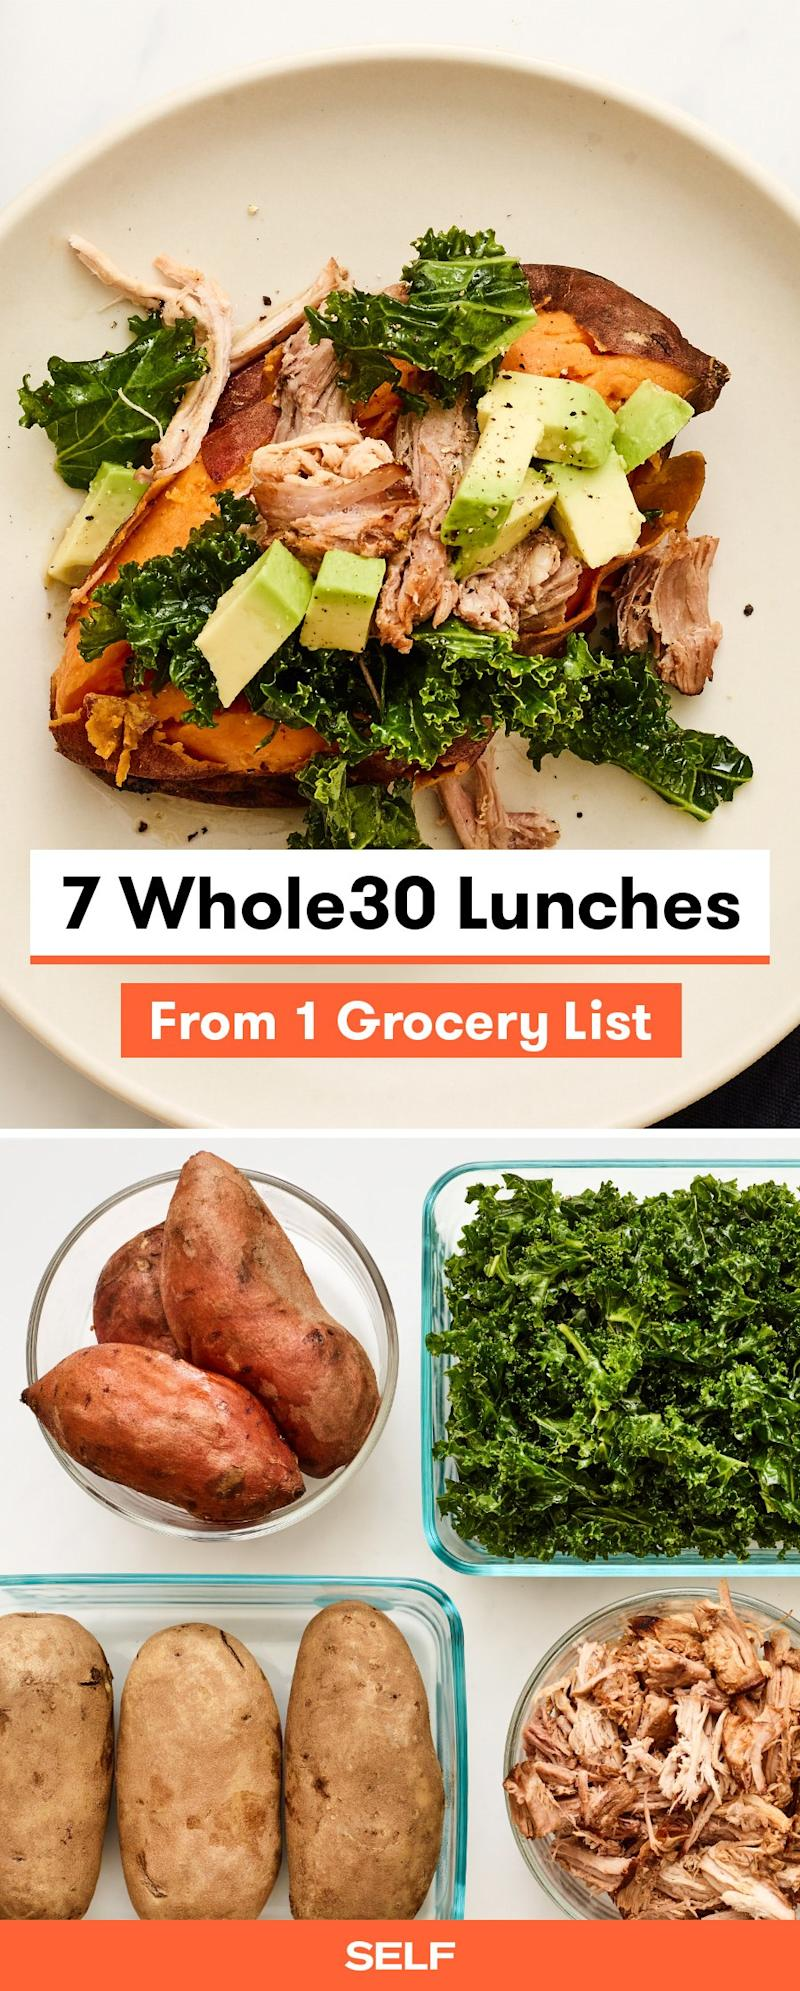 7 Whole30 Lunches From 1 Grocery List